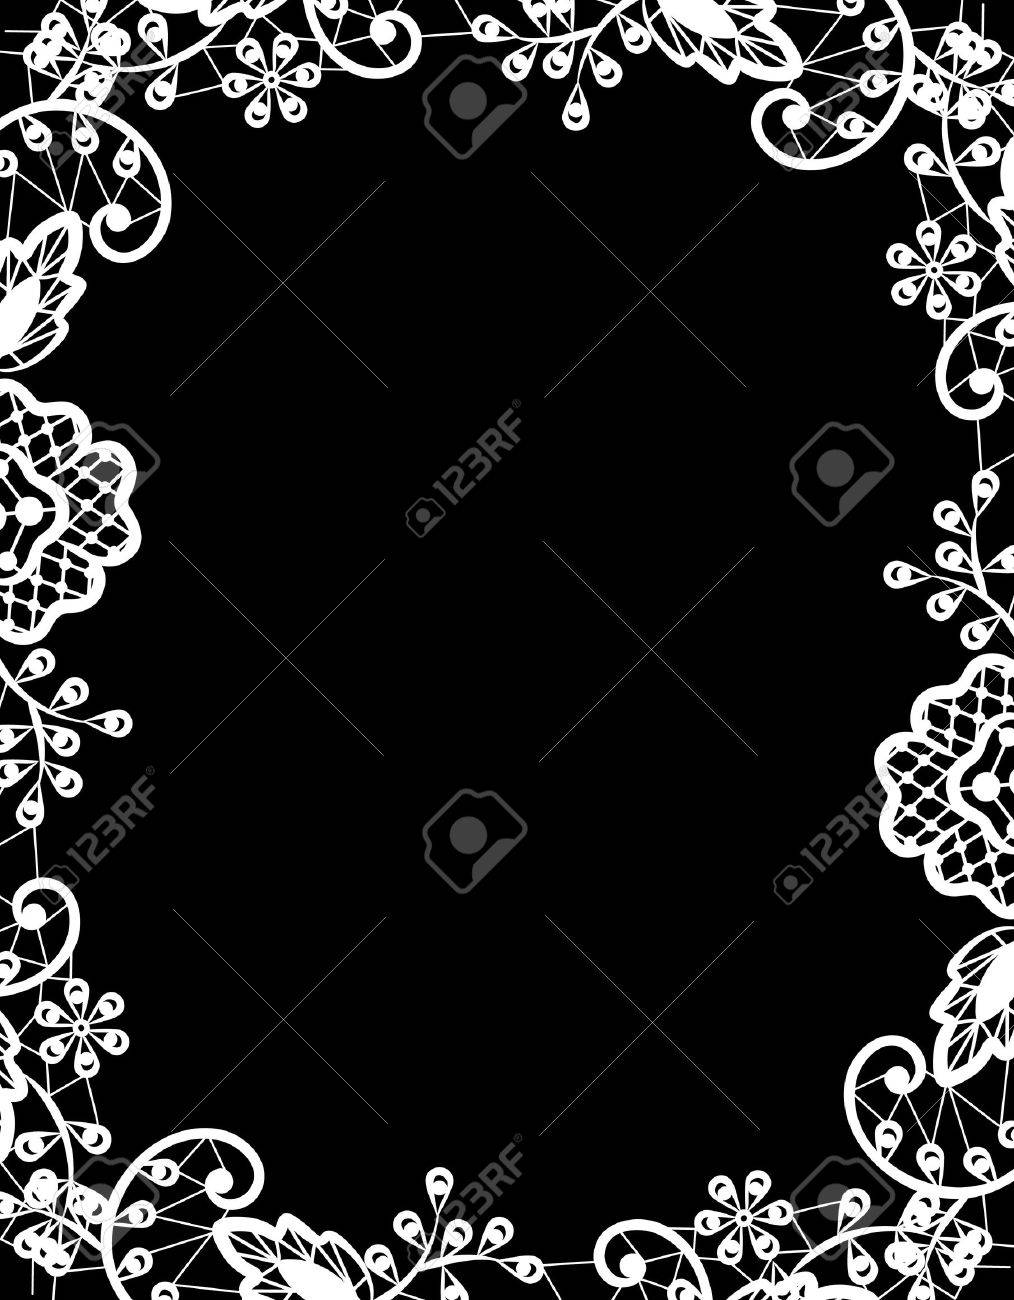 Wedding invitation or greeting card with white lace on black vector wedding invitation or greeting card with white lace on black background m4hsunfo